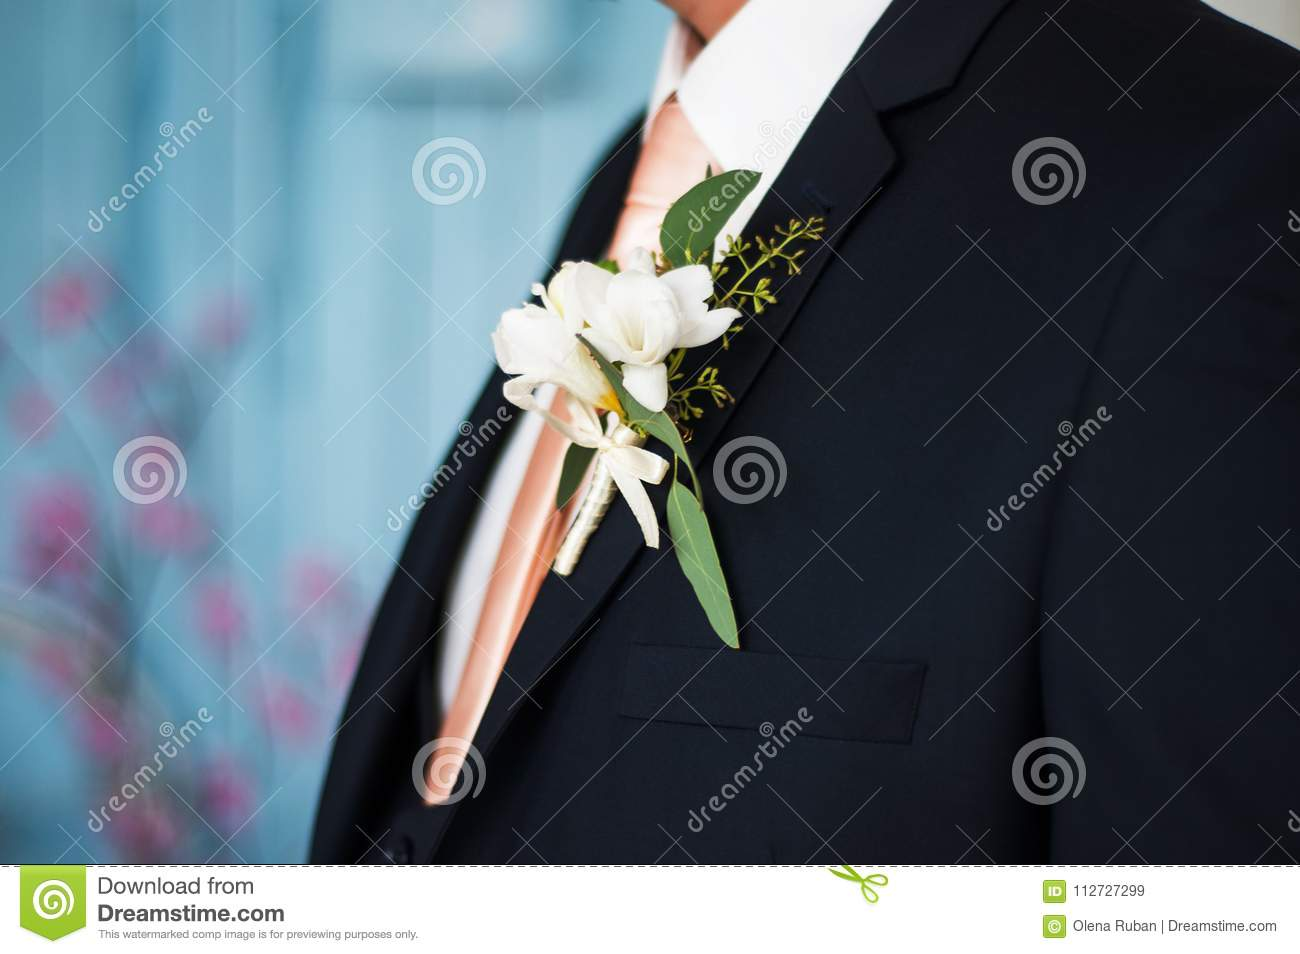 Colorful Wedding Boutonniere On Suit Stock Image - Image of beauty ...